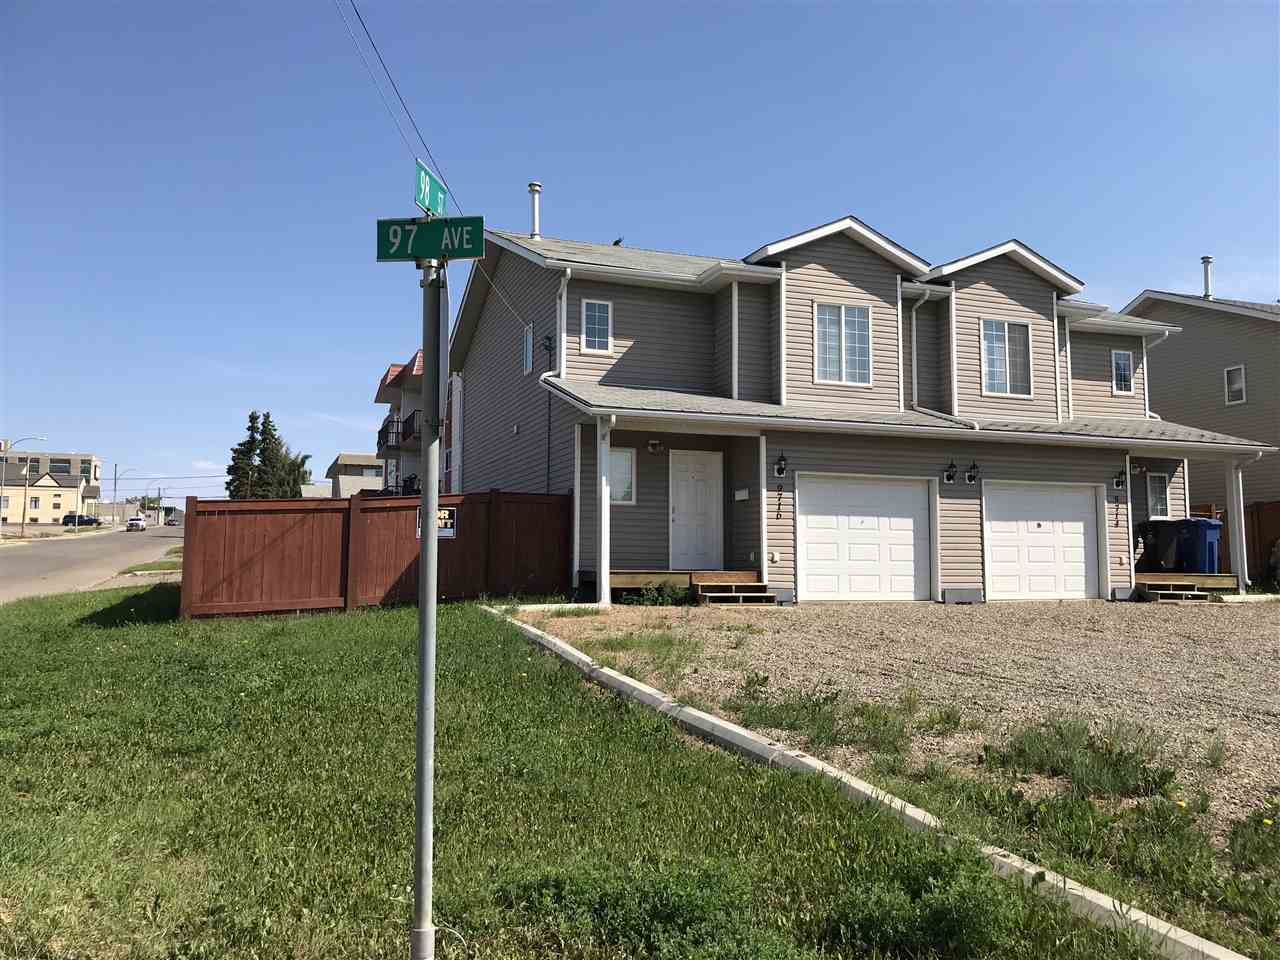 Main Photo: 9716 97 Avenue in Fort St. John: Fort St. John - City SE House 1/2 Duplex for sale (Fort St. John (Zone 60))  : MLS®# R2282899